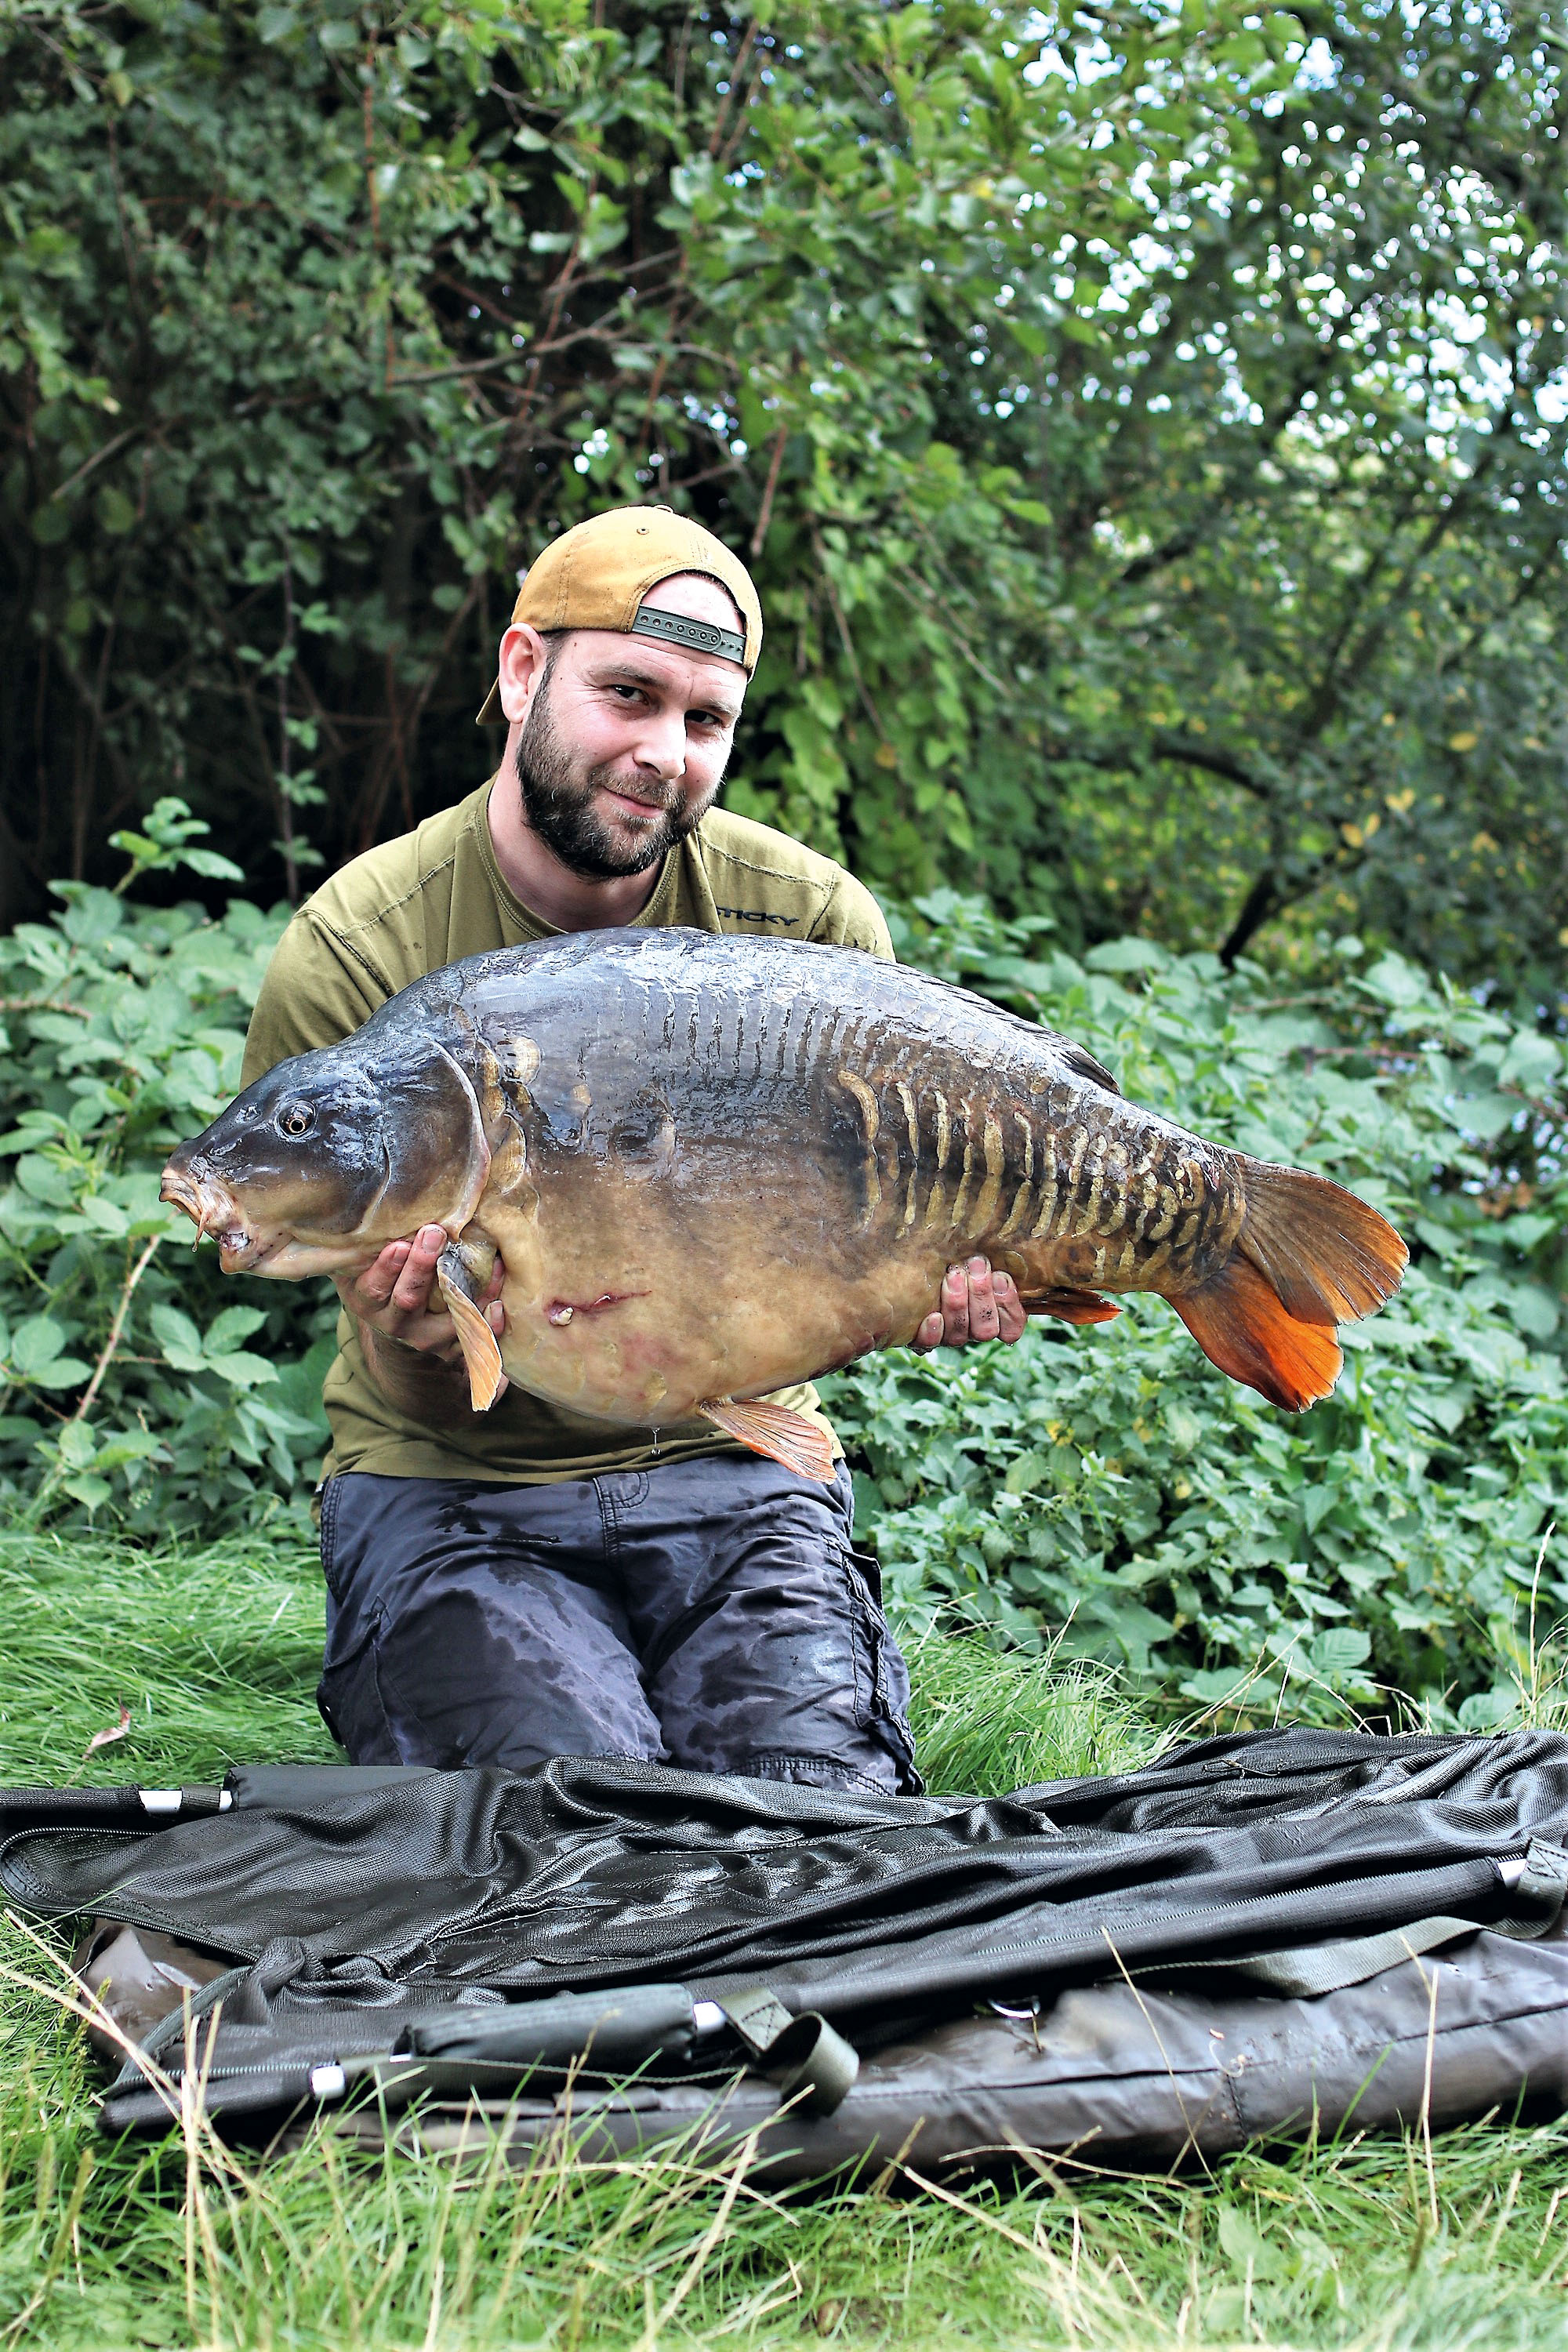 At 41lb and with a very distinctive body shape, The Ugly Sutton is a real character of the lake